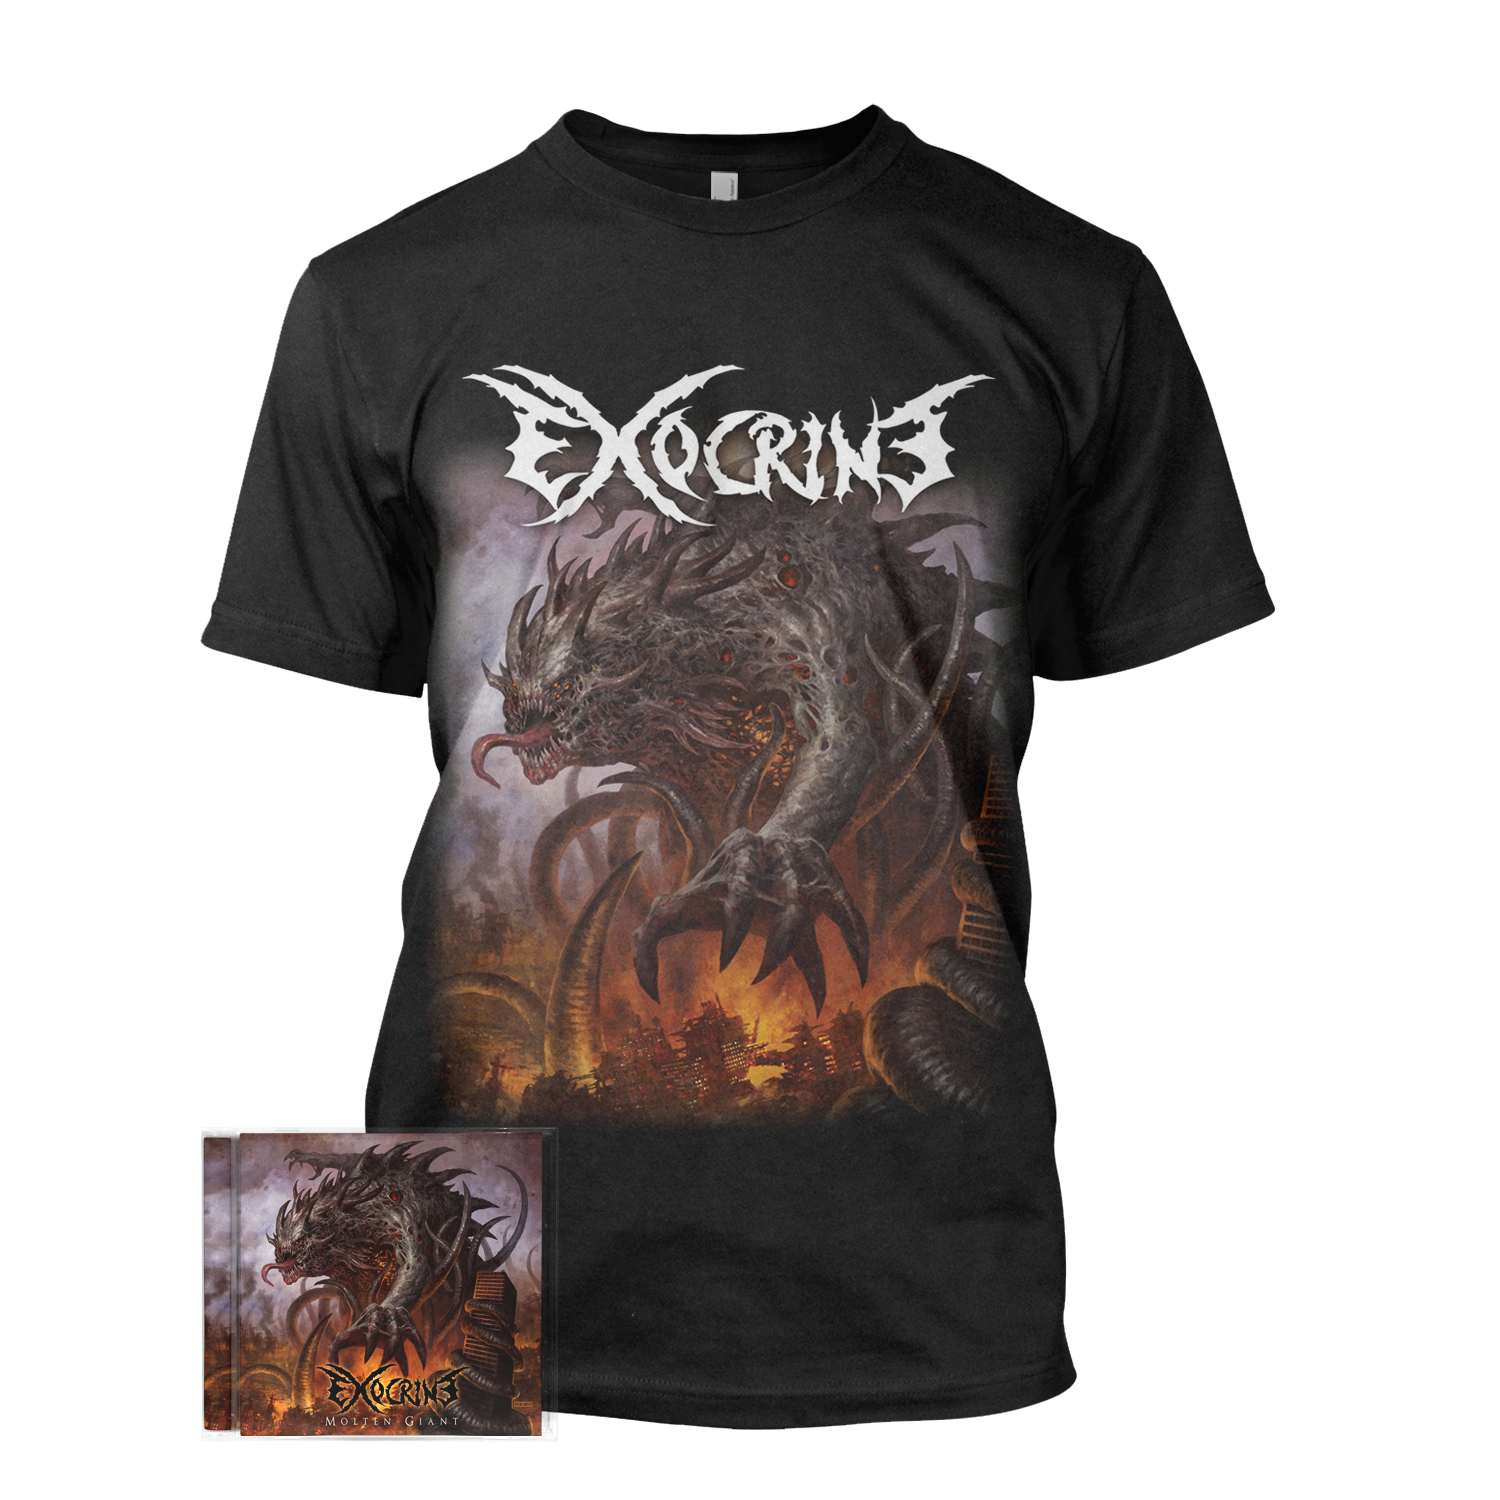 Molten Giant CD + Tee Bundle